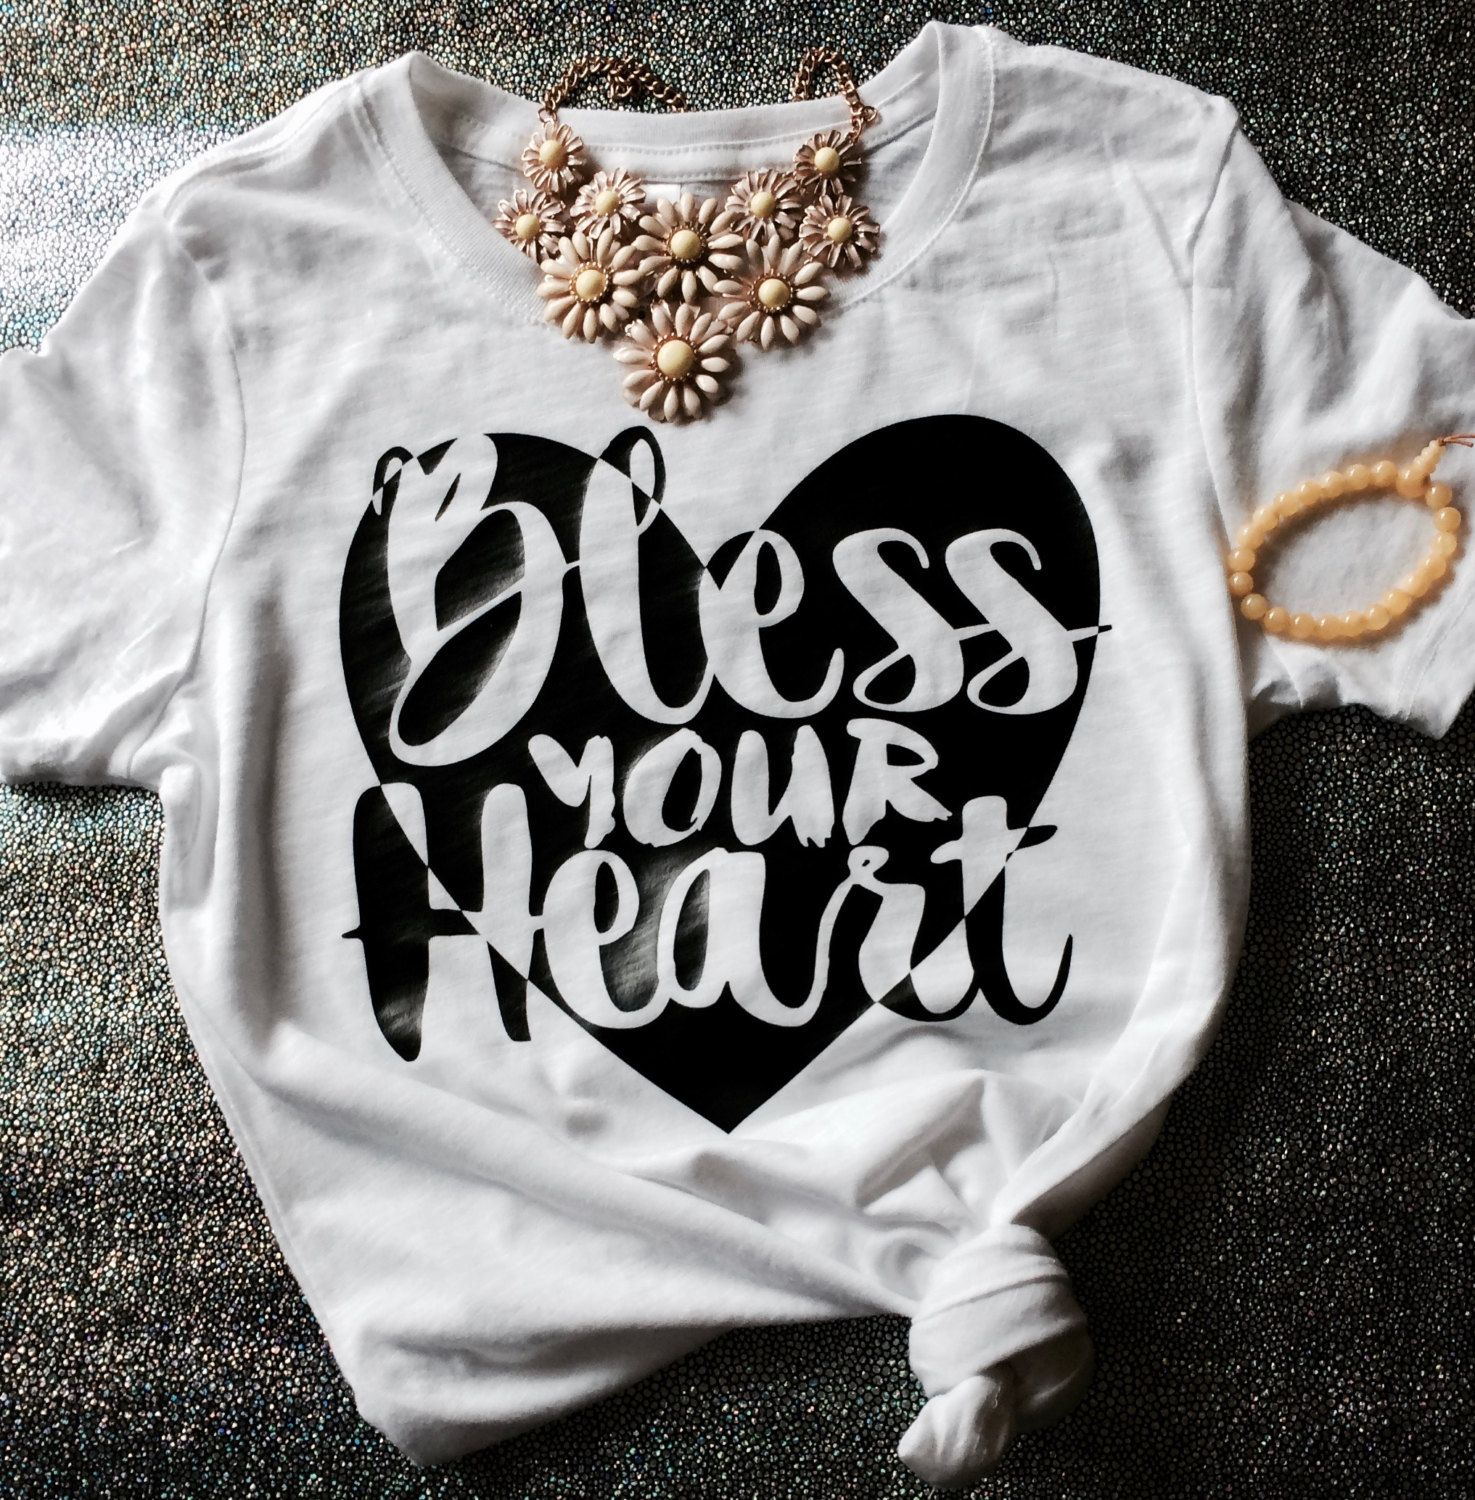 Bless Your Heart Southern Belle T-shirt by BlossomBuds on Etsy